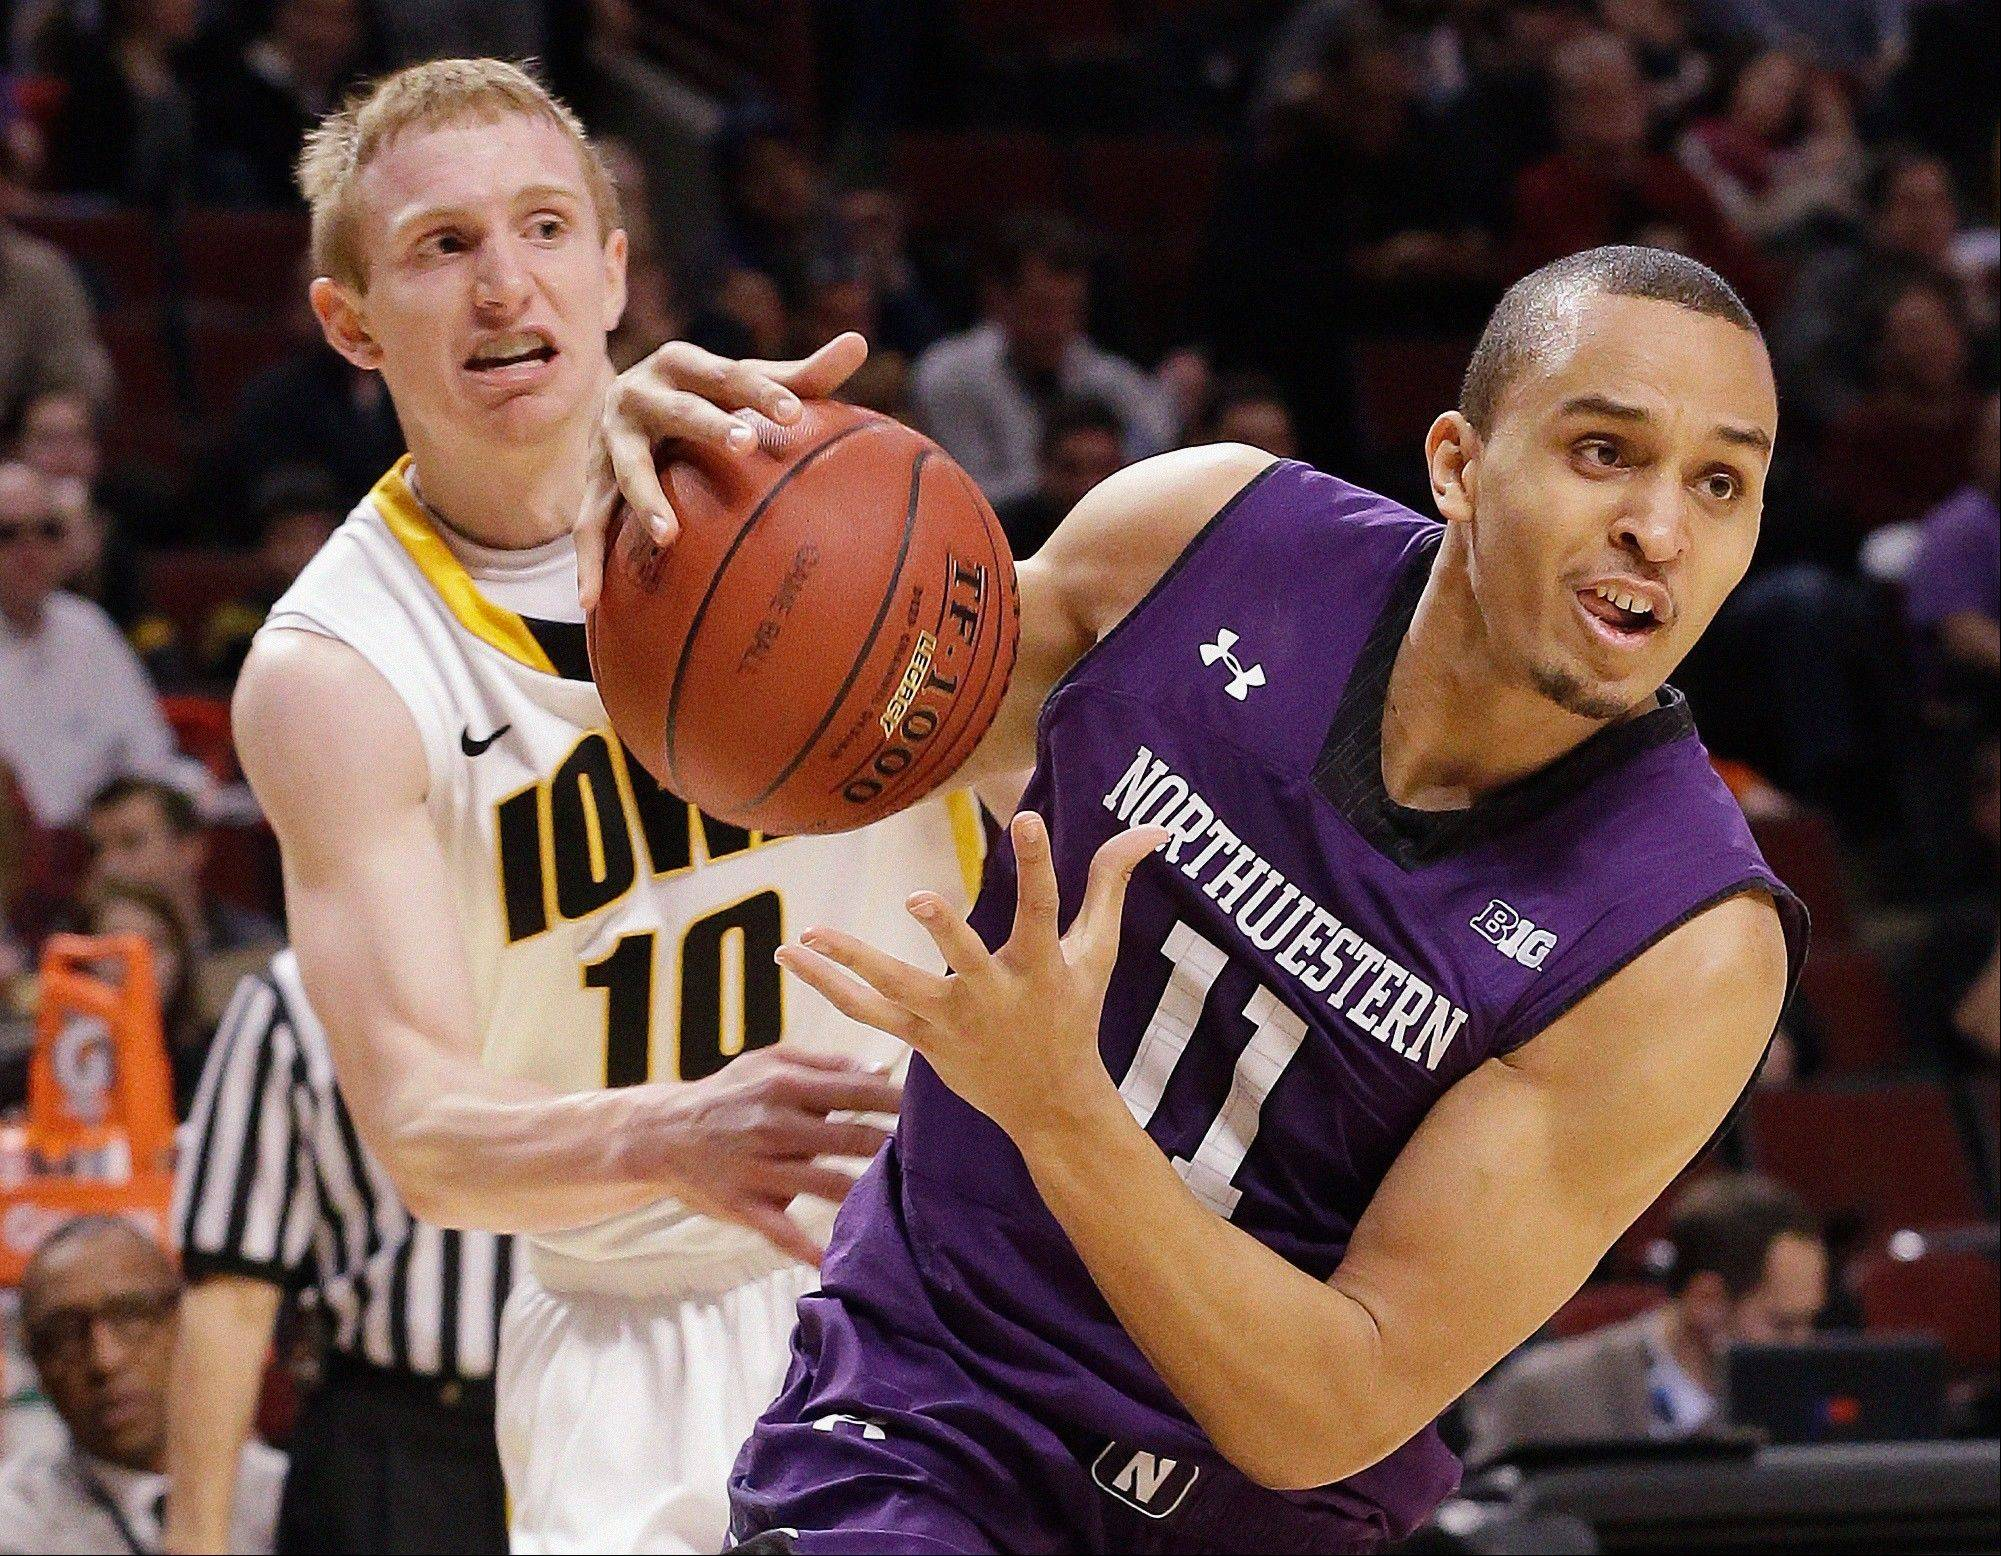 Images: Northwestern vs. Iowa Men's Basketball